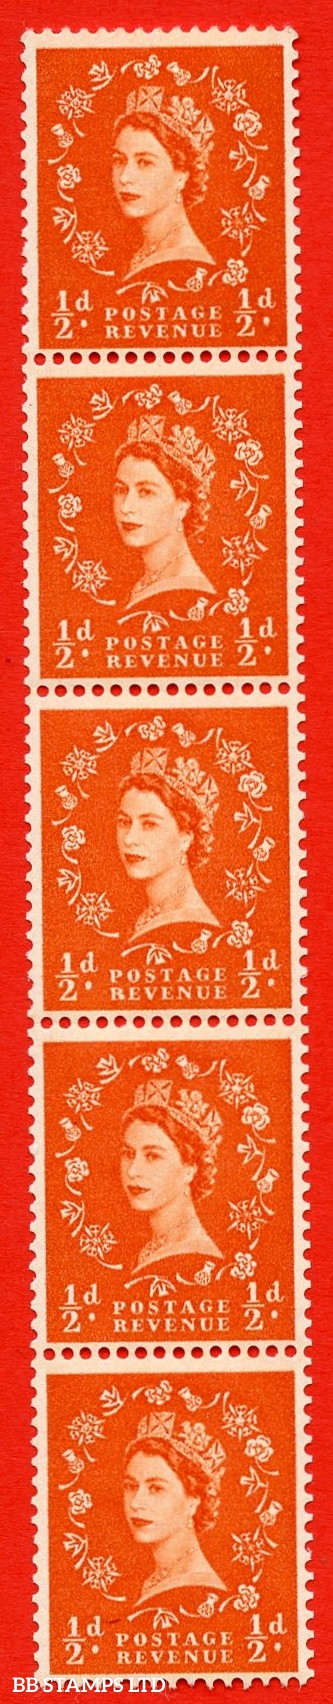 "SG. 570. S4n. ½d Orange. A superb MOUNTED MINT example. Coil strip of 5. Cream paper. With a ""R"" flaw ERROR. Roll 11 variety."